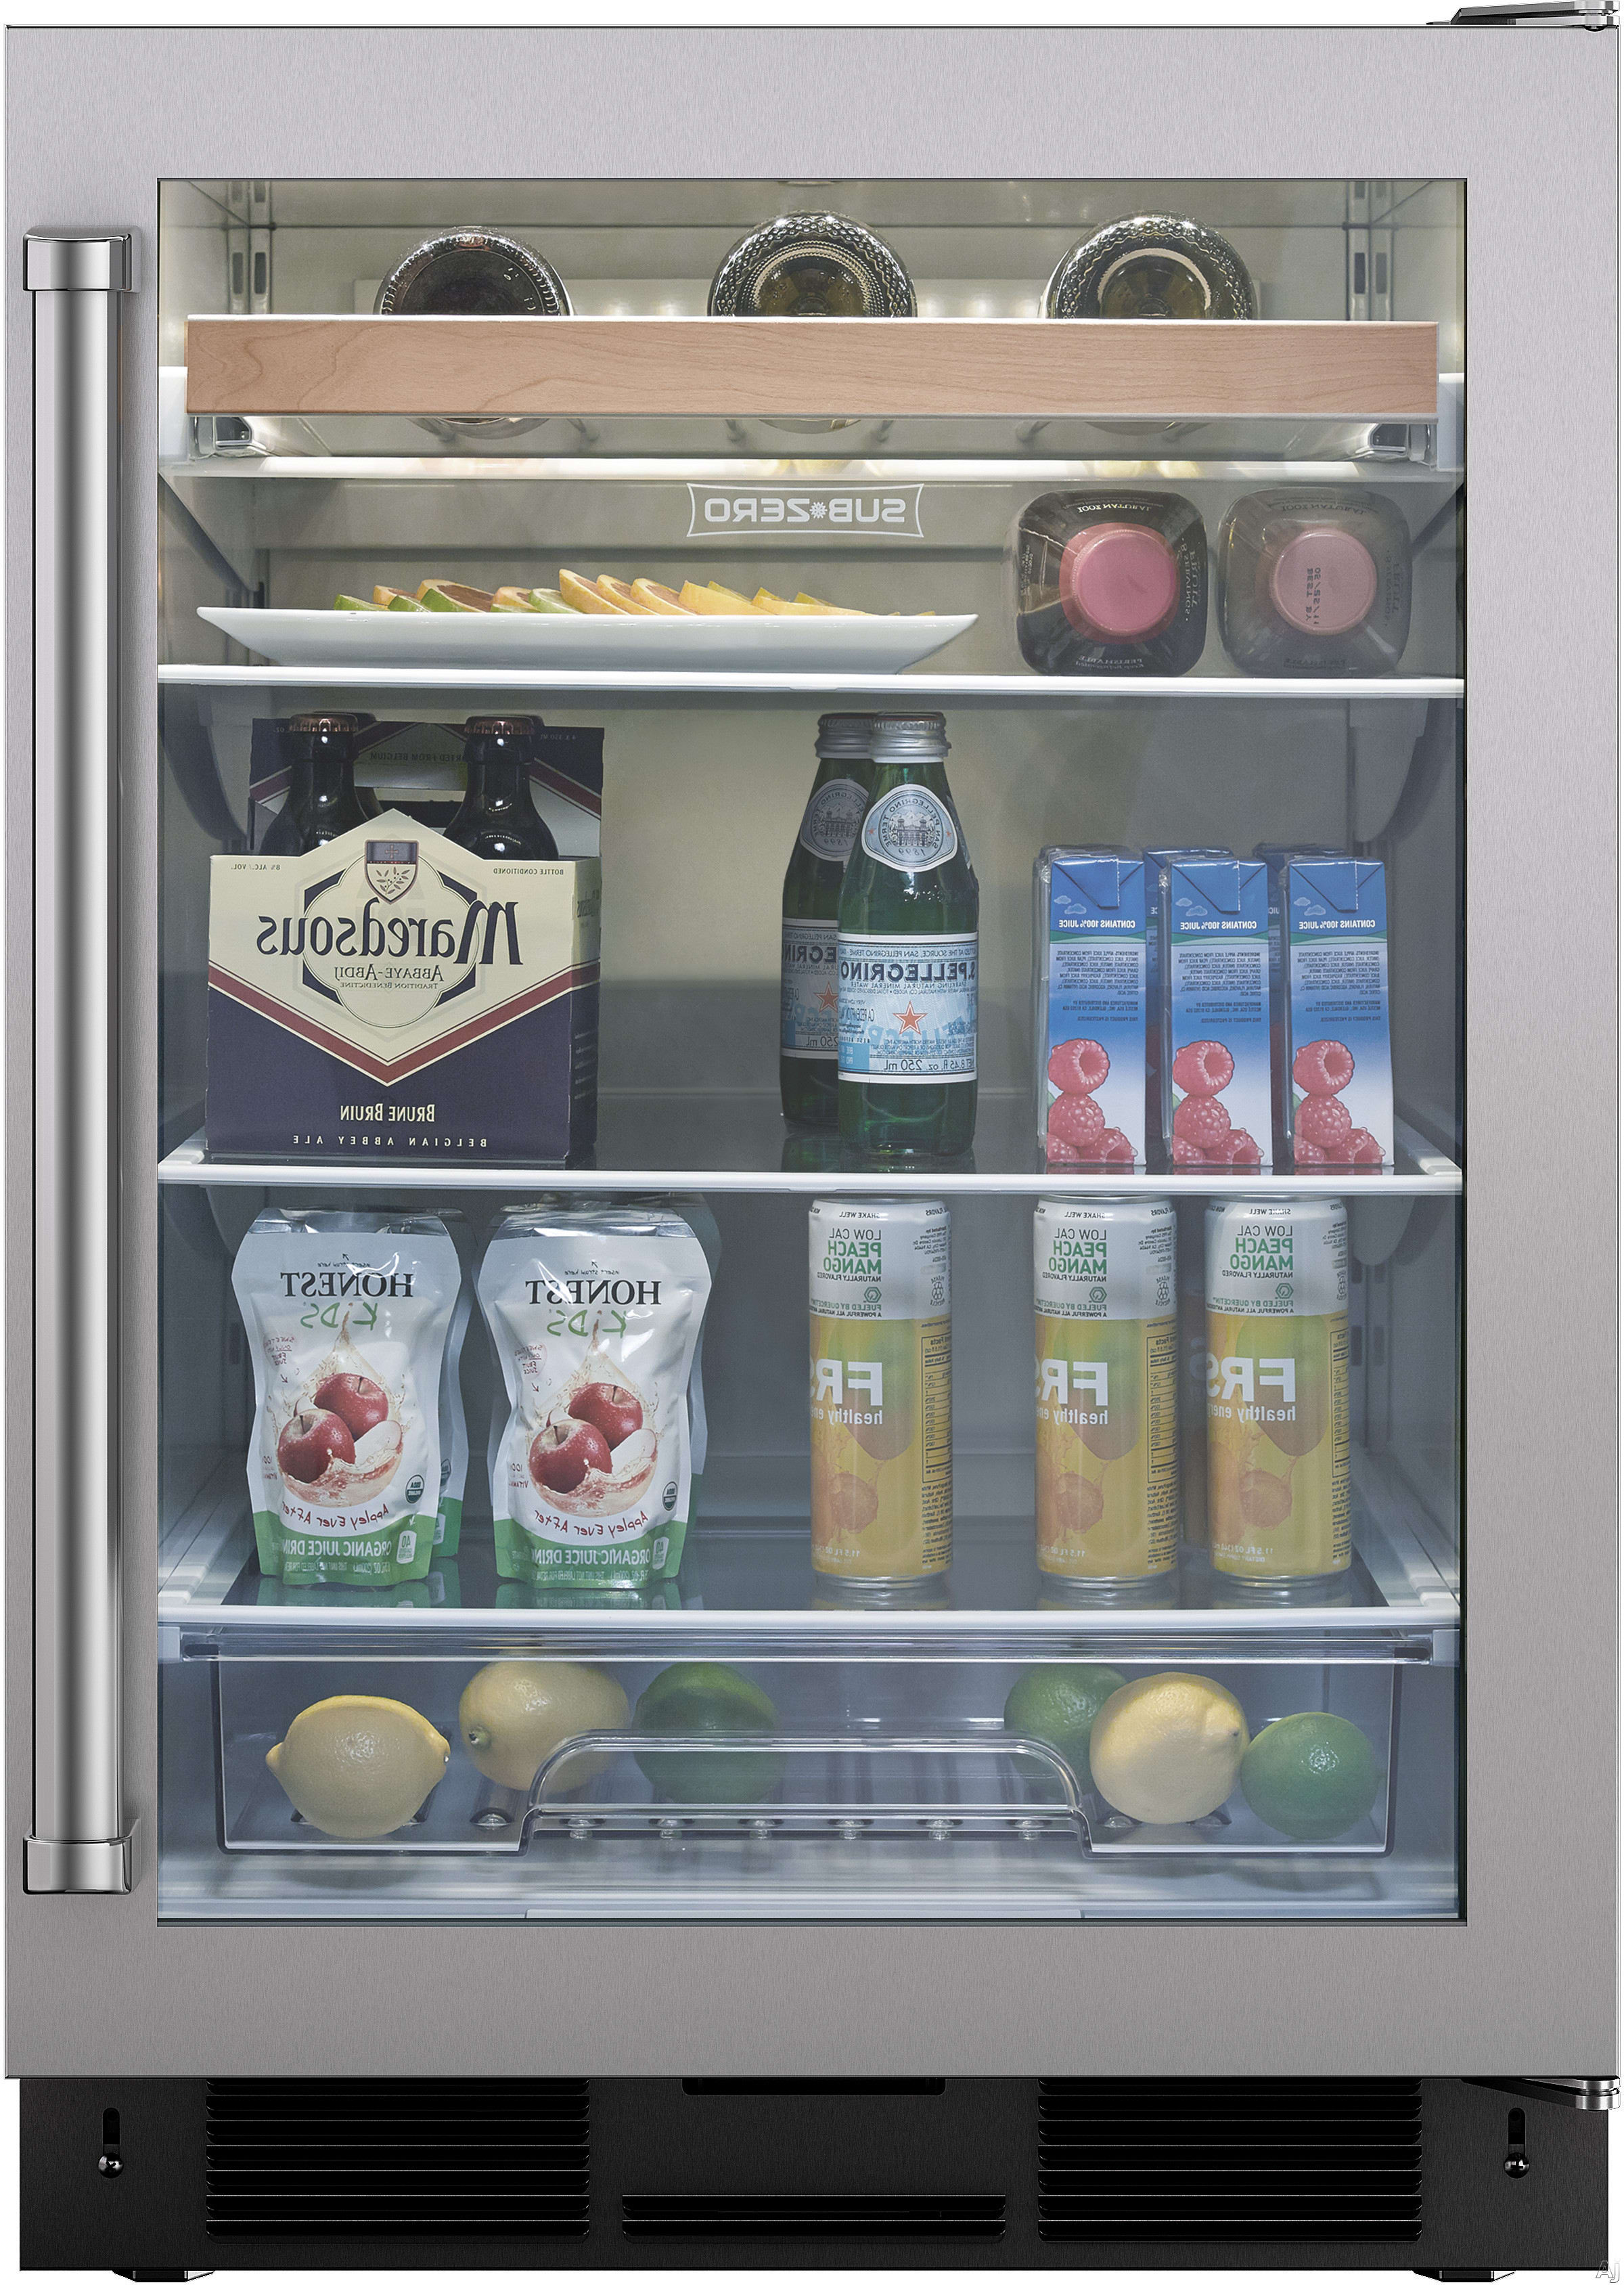 foodservice imbera usa display blackbox prod countertop refrigerator commercial vr buy fs refrigerators